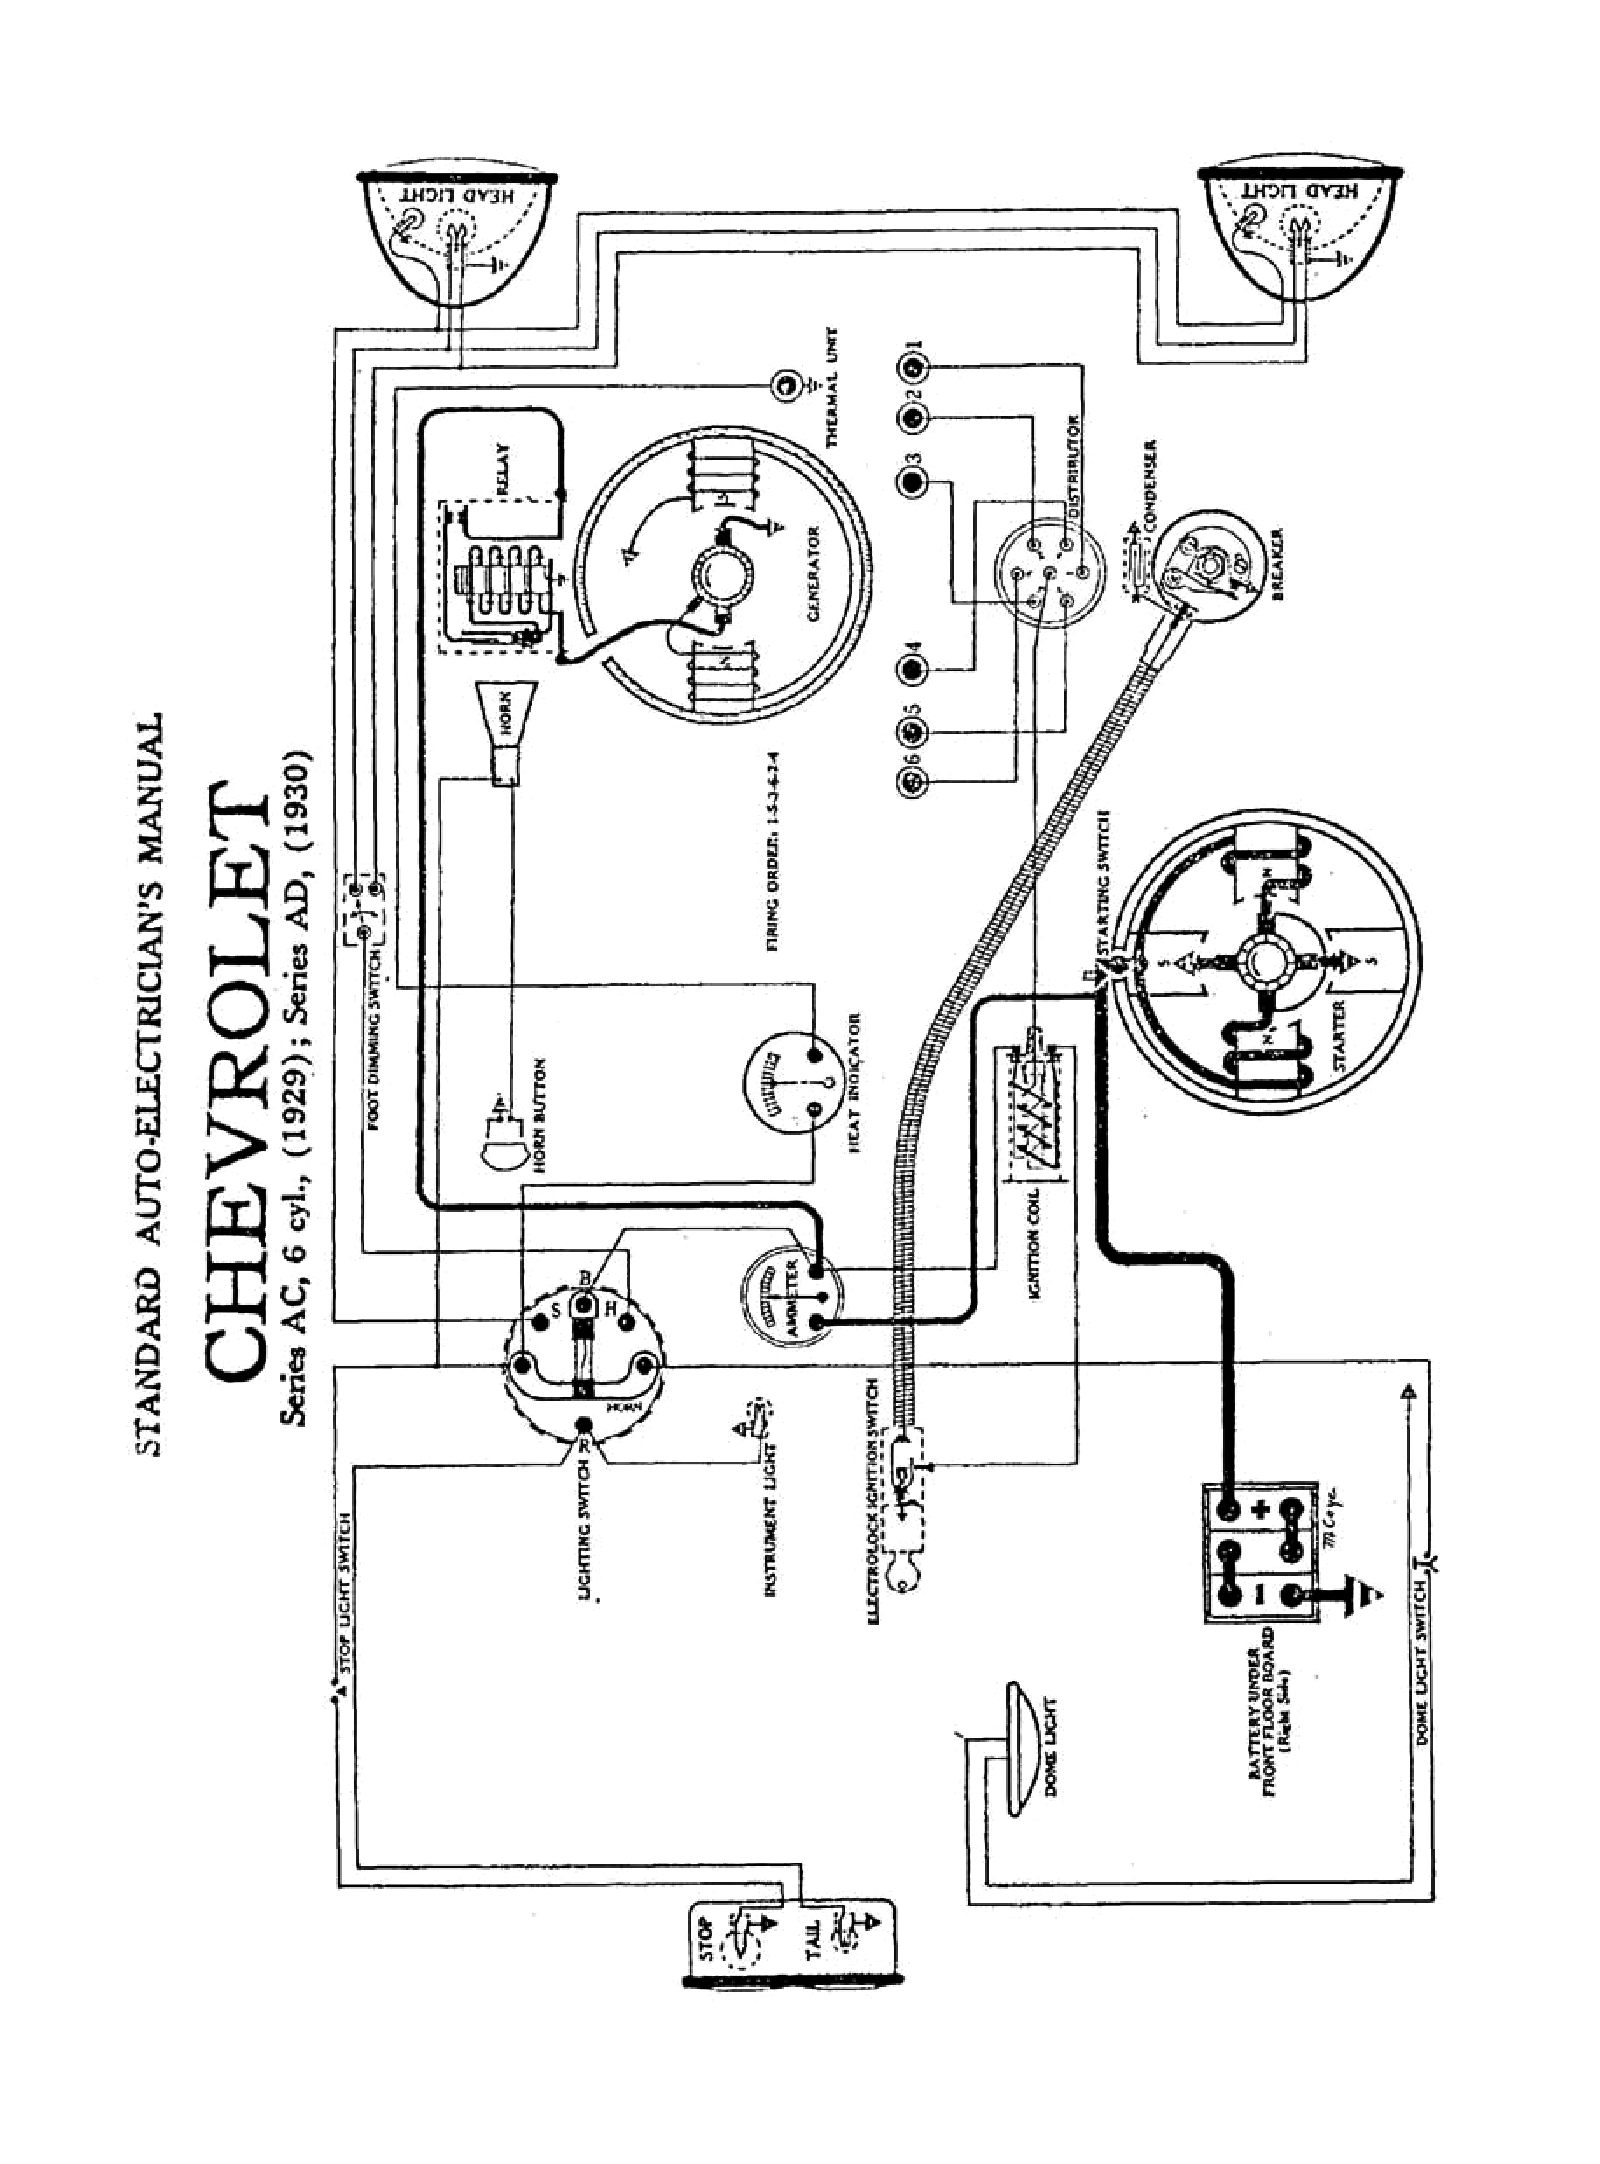 1929 chevy wiring diagram | mile-item wiring diagram table -  mile-item.rodowodowe.eu  rodowodowe.eu